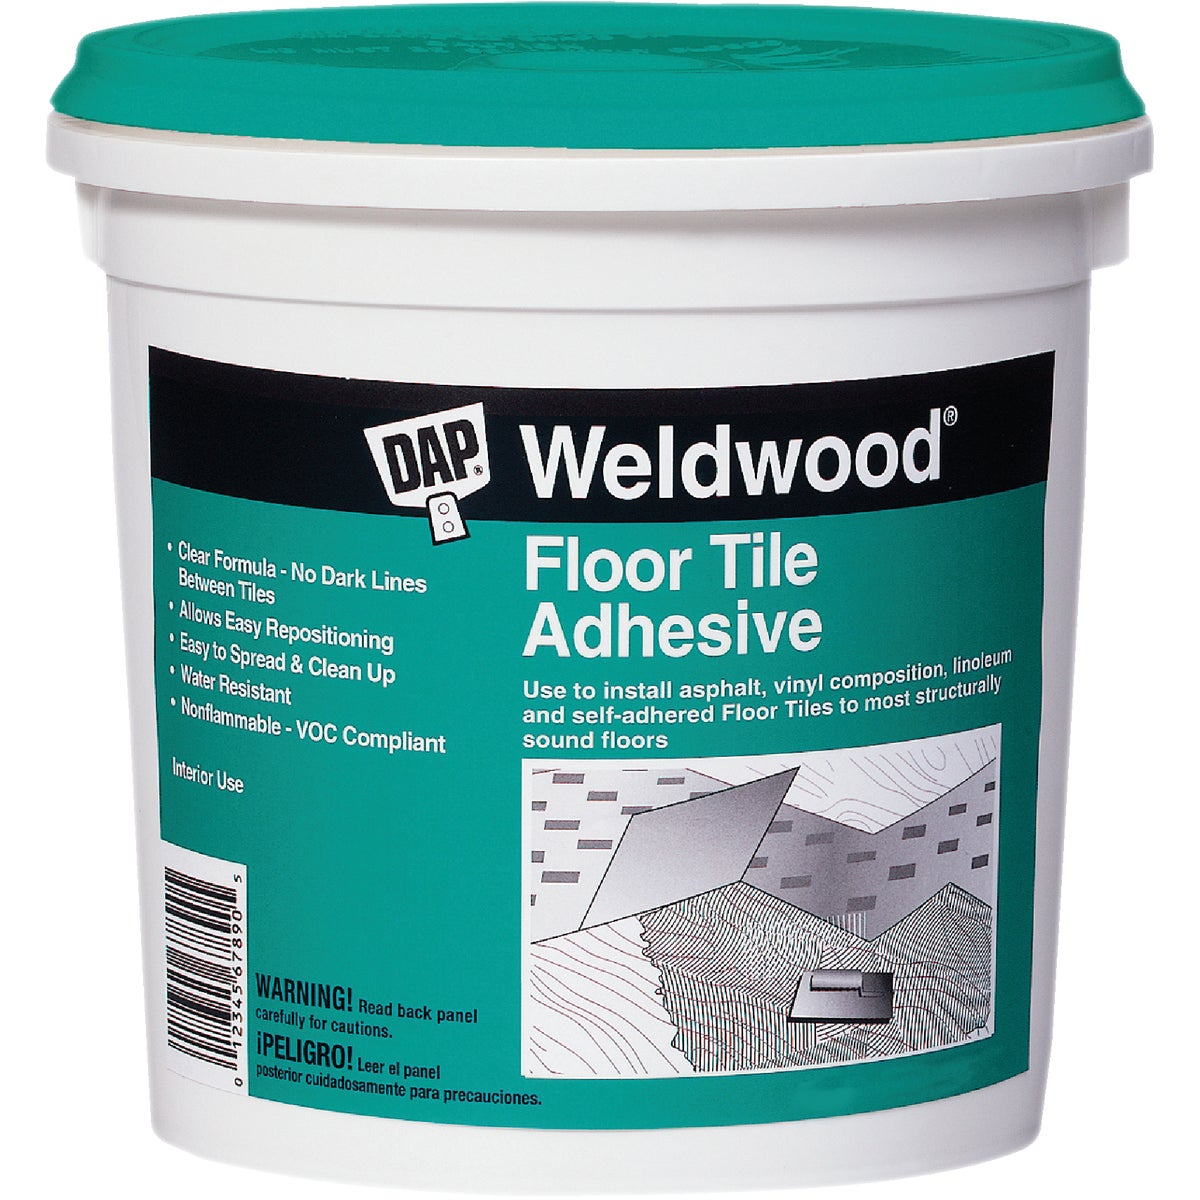 QT FLOOR TILE ADHESIVE - 00136 by Dap Inc